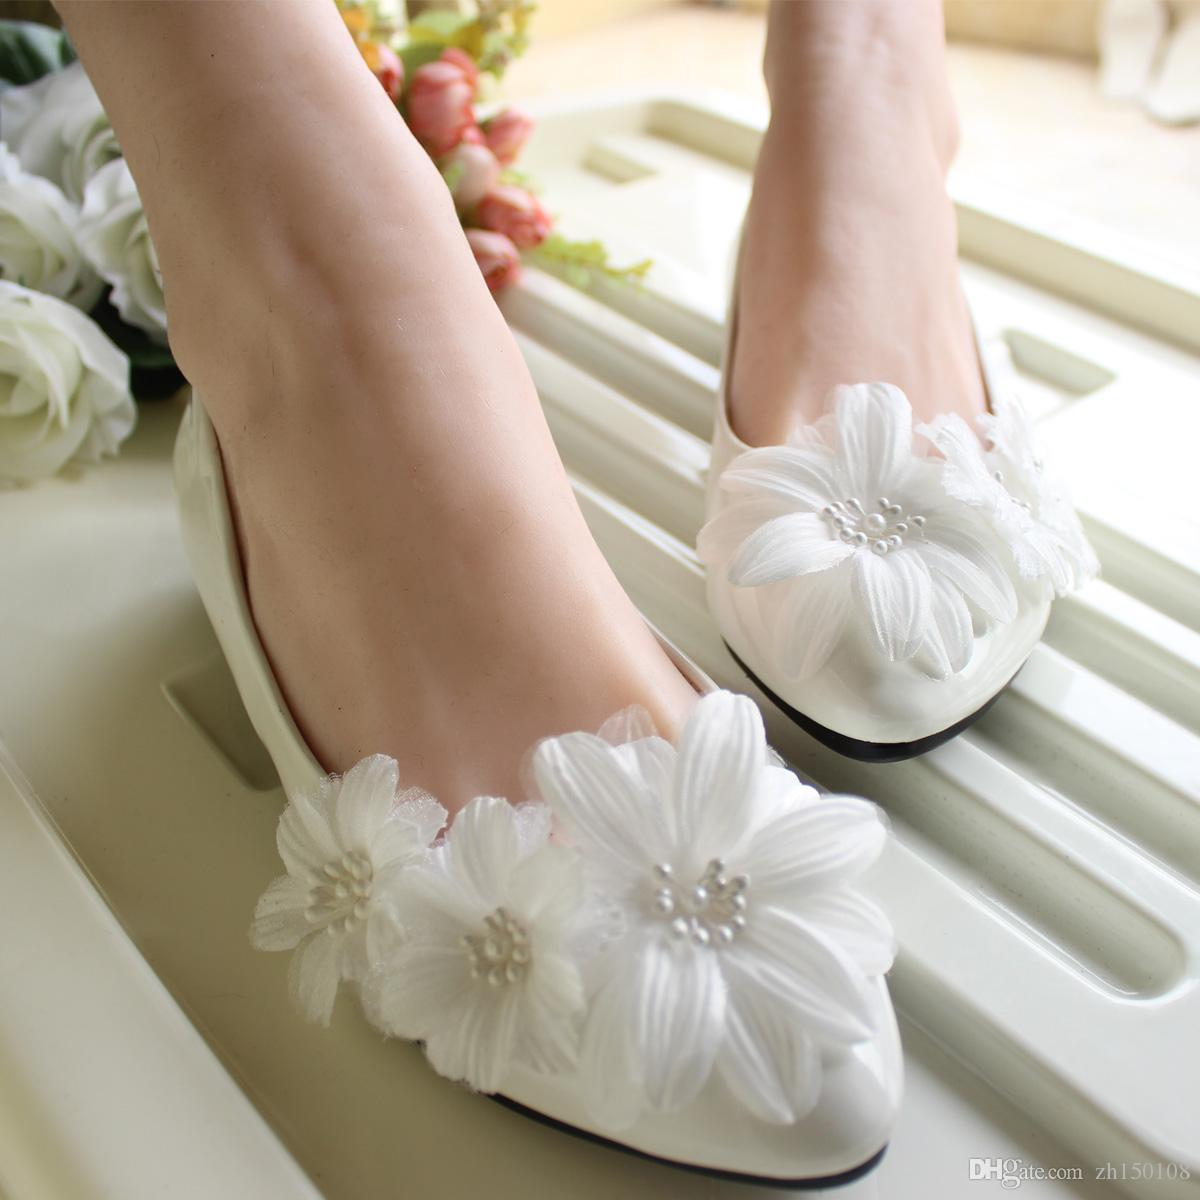 af338d25f9cc26 Lace White Crystal Wedding Shoes Bridal Flats Low High Heel Pump Size 5 9.5 Wedding  Shoes Ivory Wedding Shoes Malaysia From Zh150108